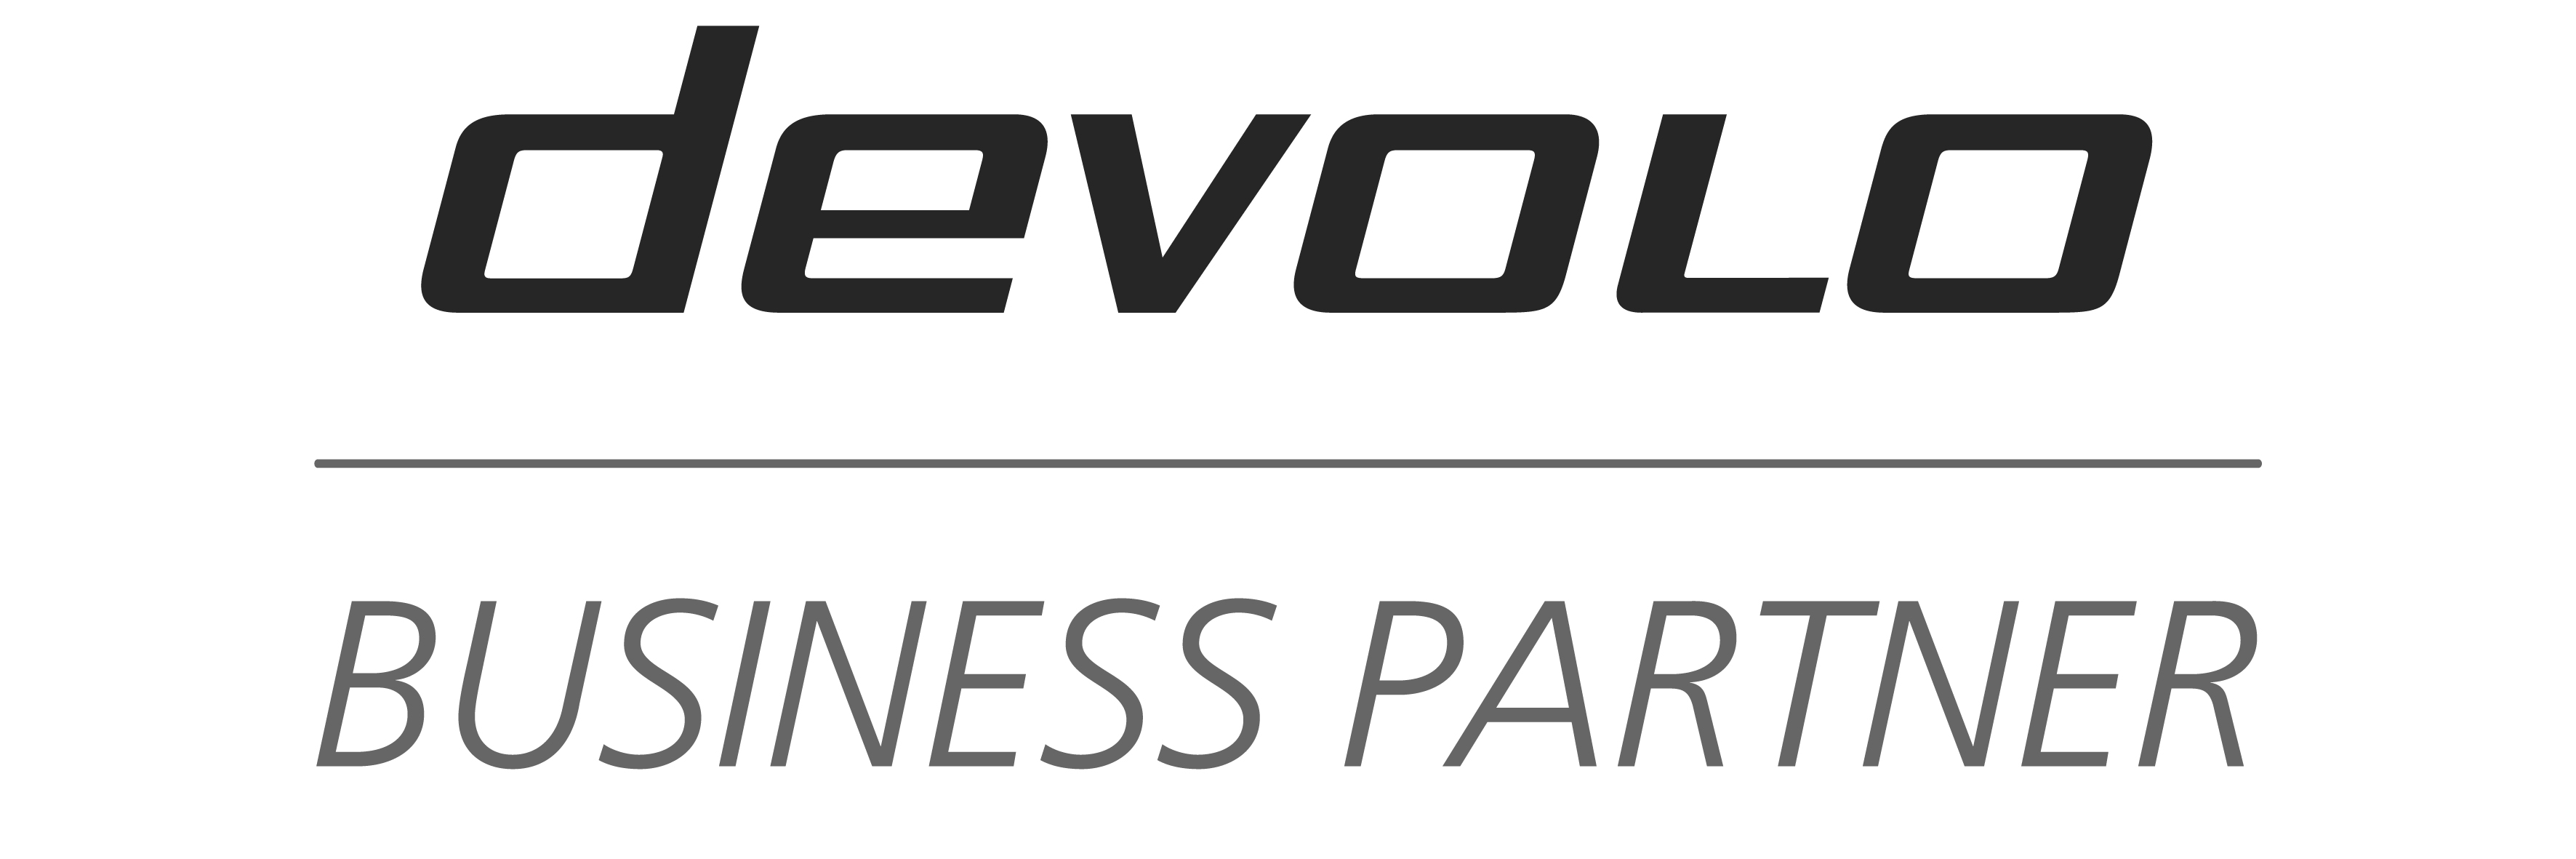 Devolo Dev Bs Buinfos Logo Dbizz De En Businesspartner Print 01